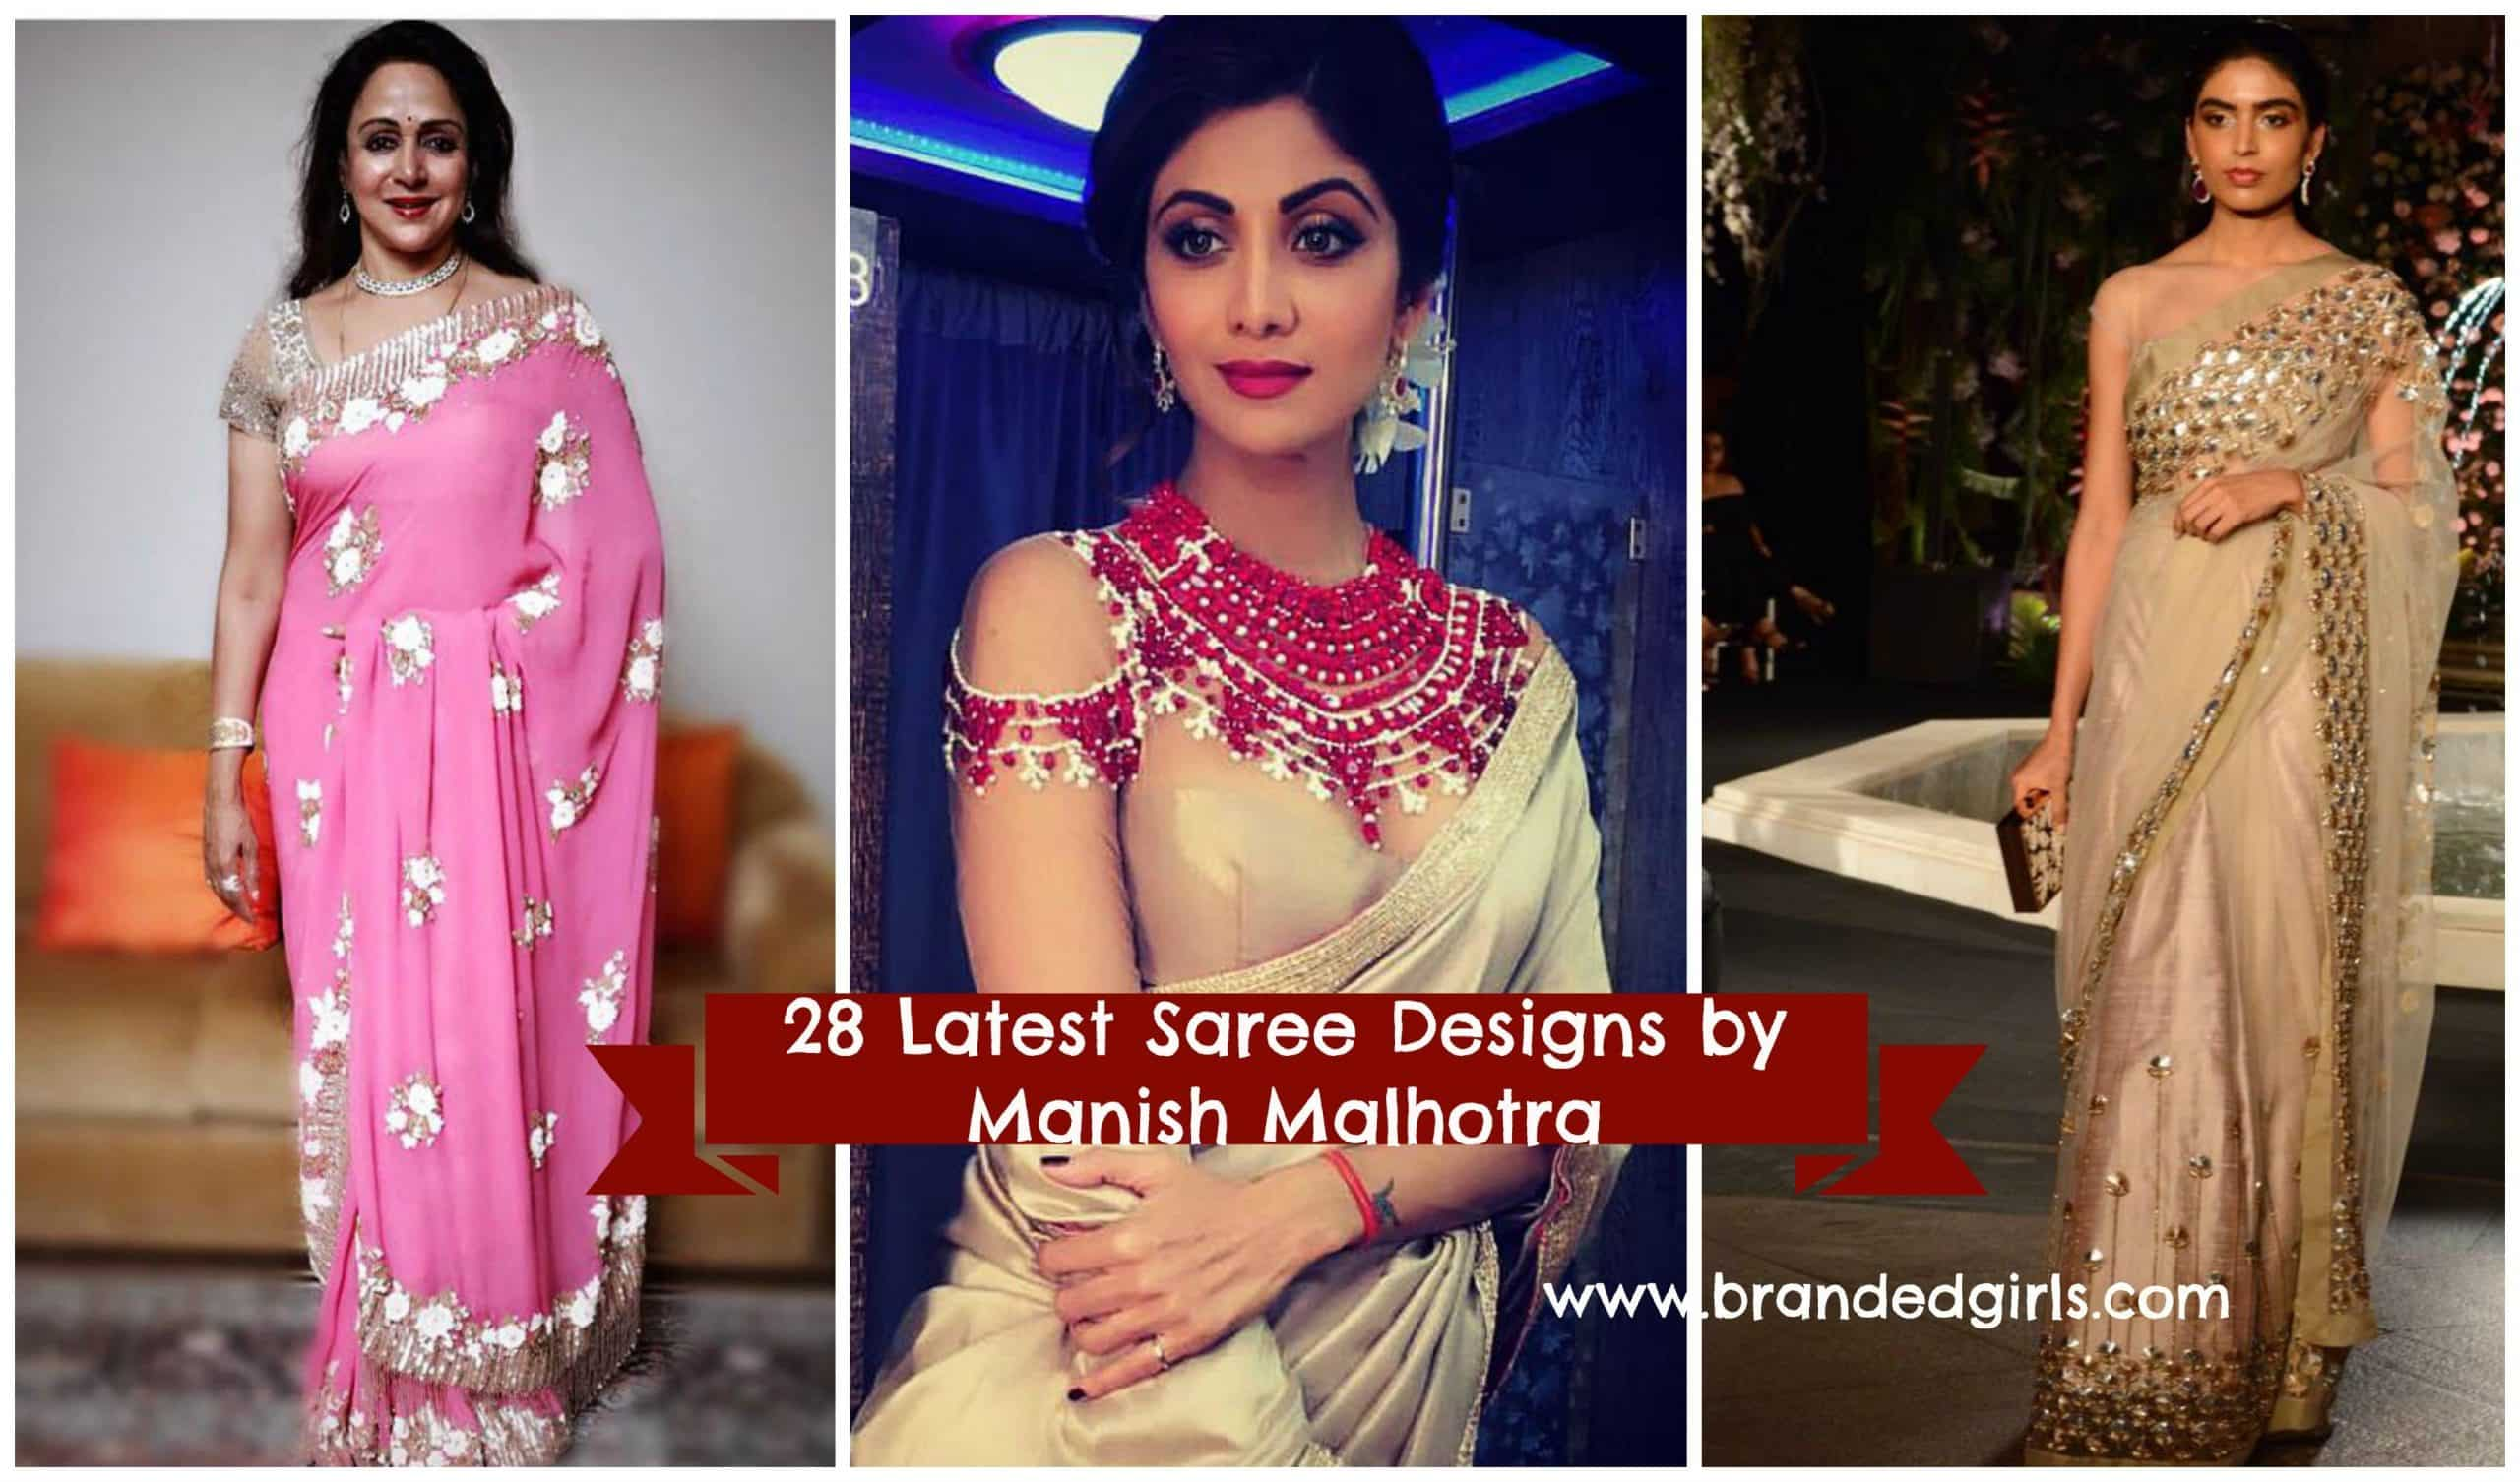 Fashion designers manish malhotra 66